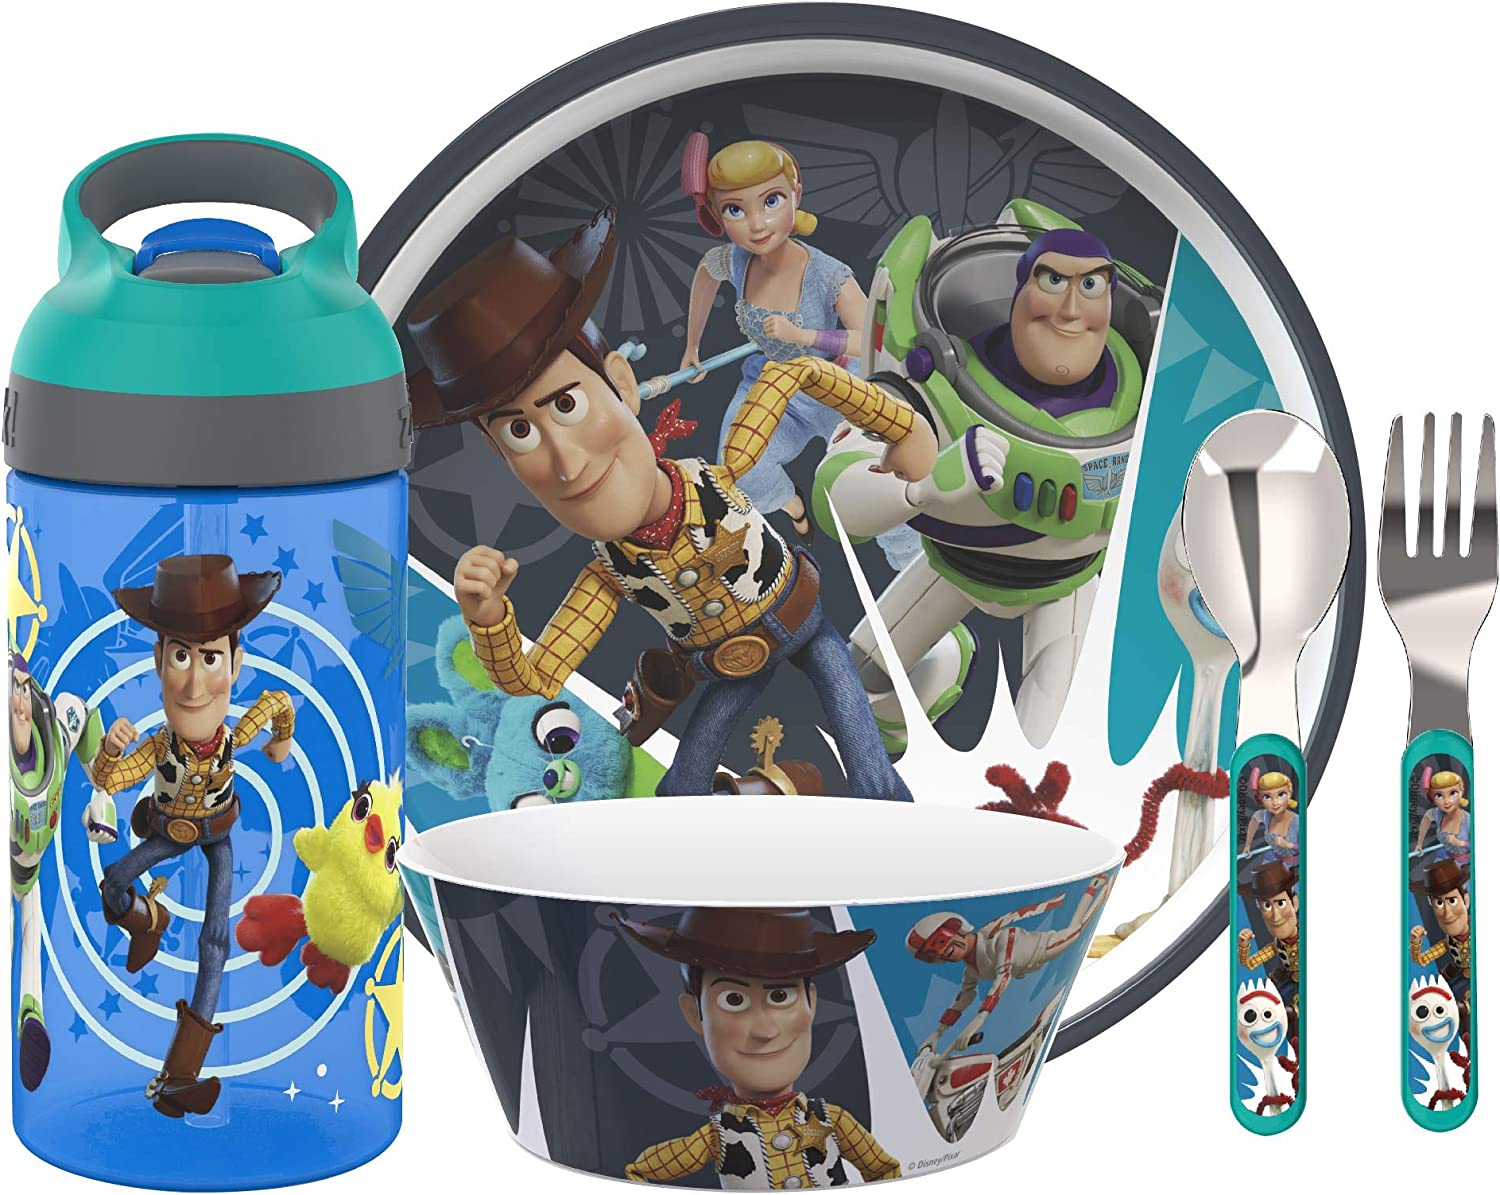 Zak Designs Toy Story 4 Dinnerware Set Includes Plate  Bowl  Water Bottle  and Utensil Tableware  Made of Durable Material and Perfect for Kids  Woody and Buzz Lightyear  5 Piece set  BPA Free